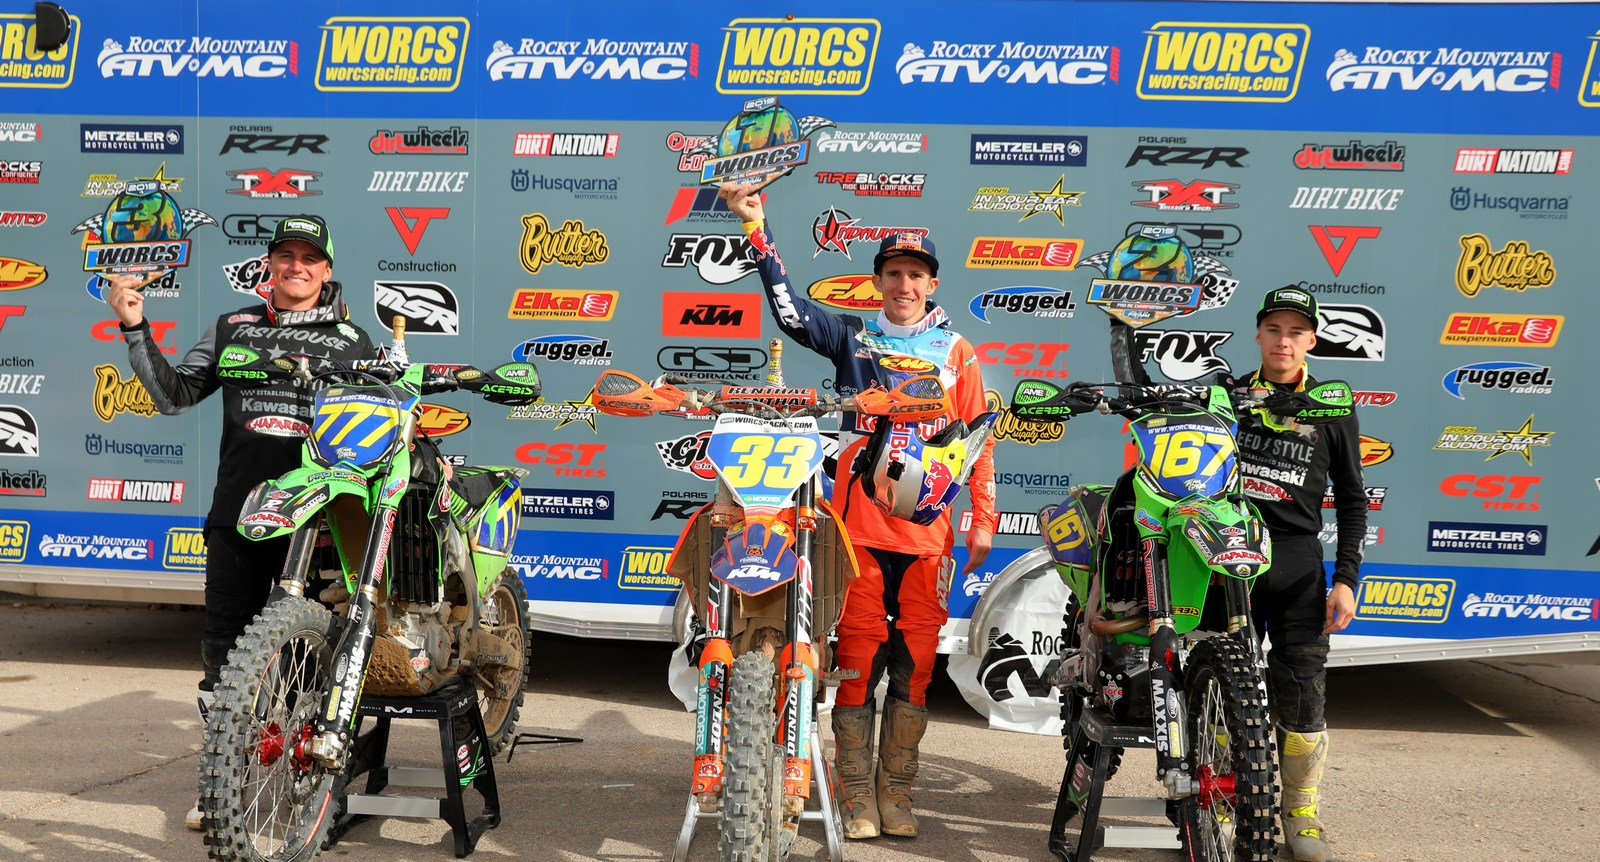 2019-01-podium-motorcycle-pro-worcs-racing